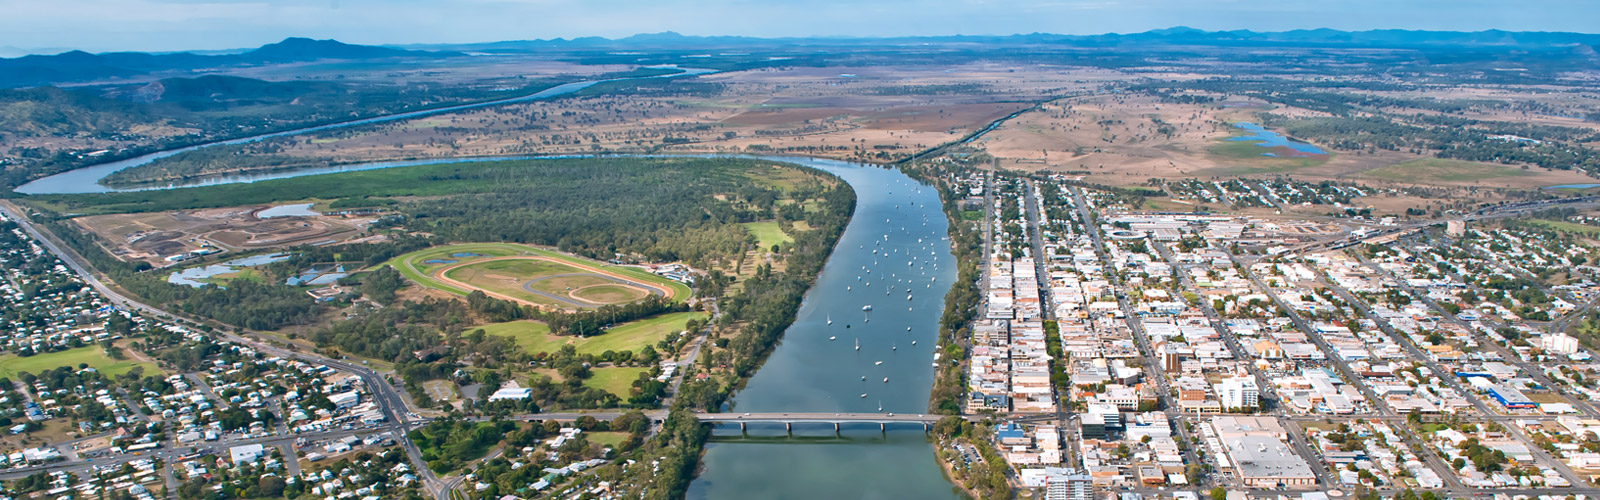 Rockhampton, Queensland